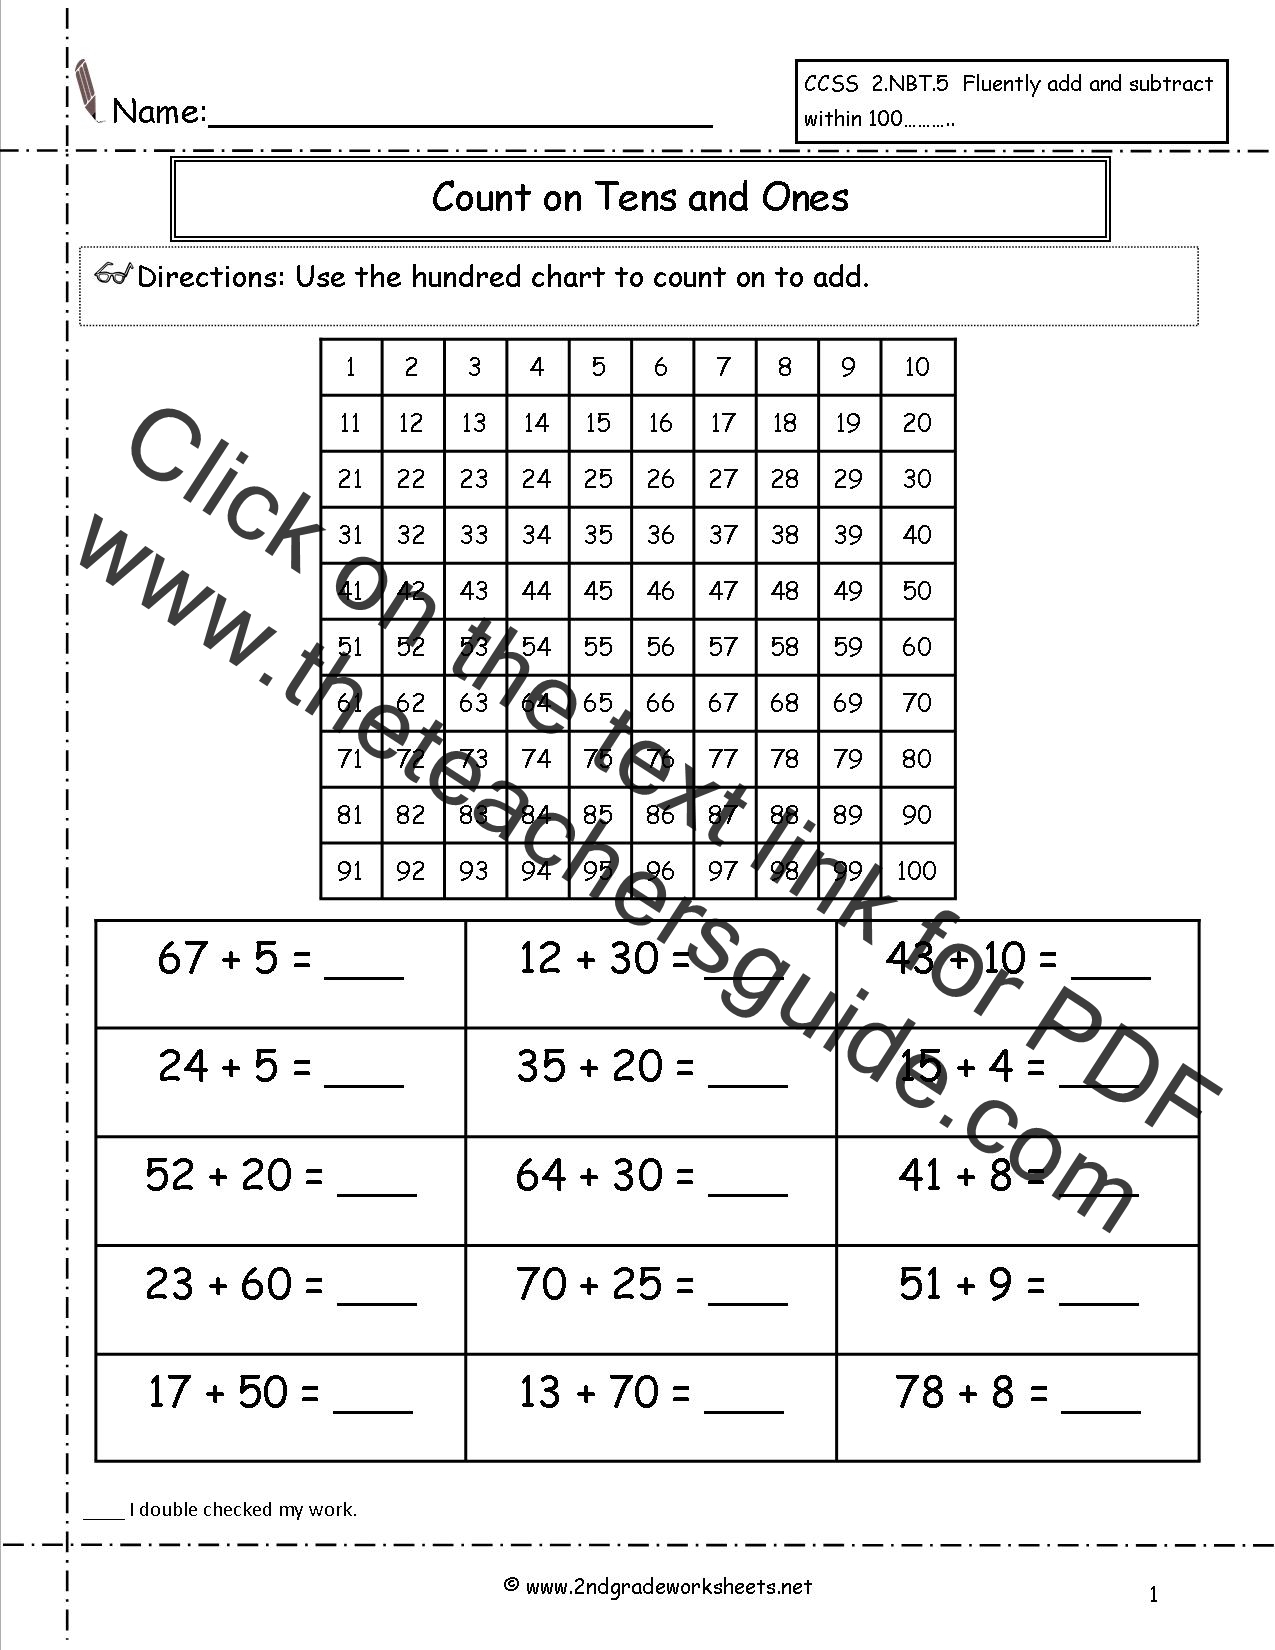 Two Digit Addition Worksheets – 4 Digit Addition with Regrouping Worksheets